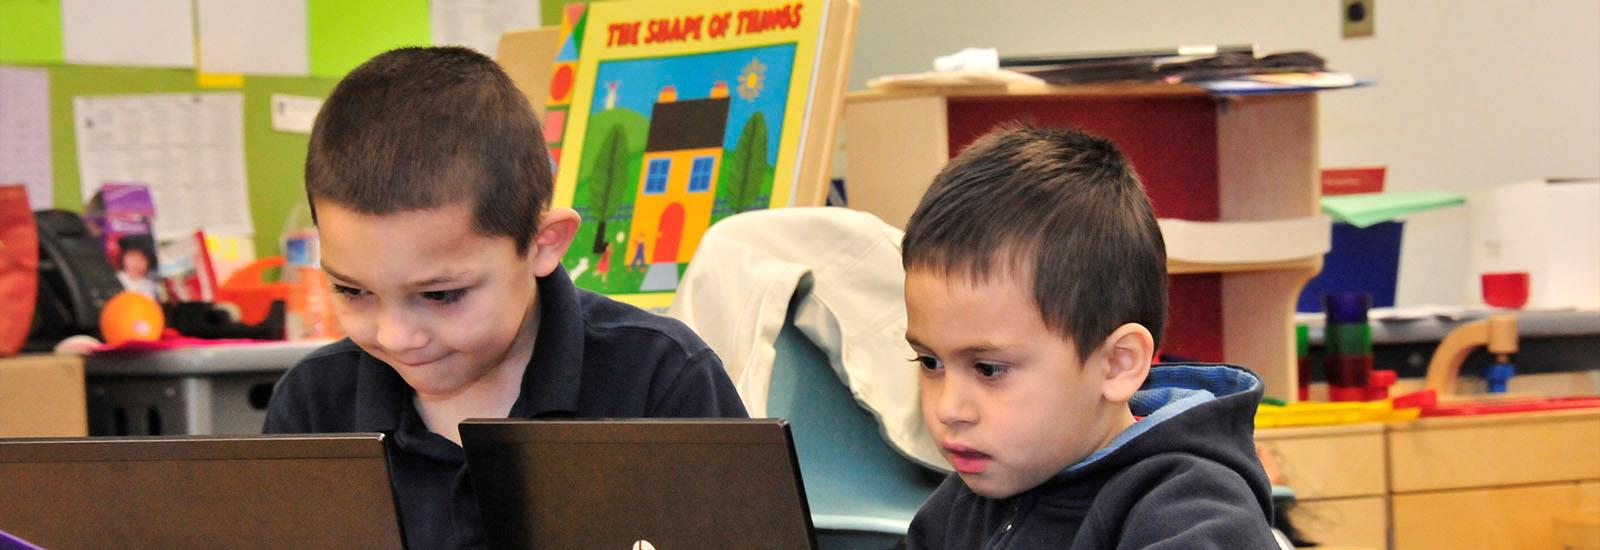 Our project-based learning incorporates technology even in the early grades.